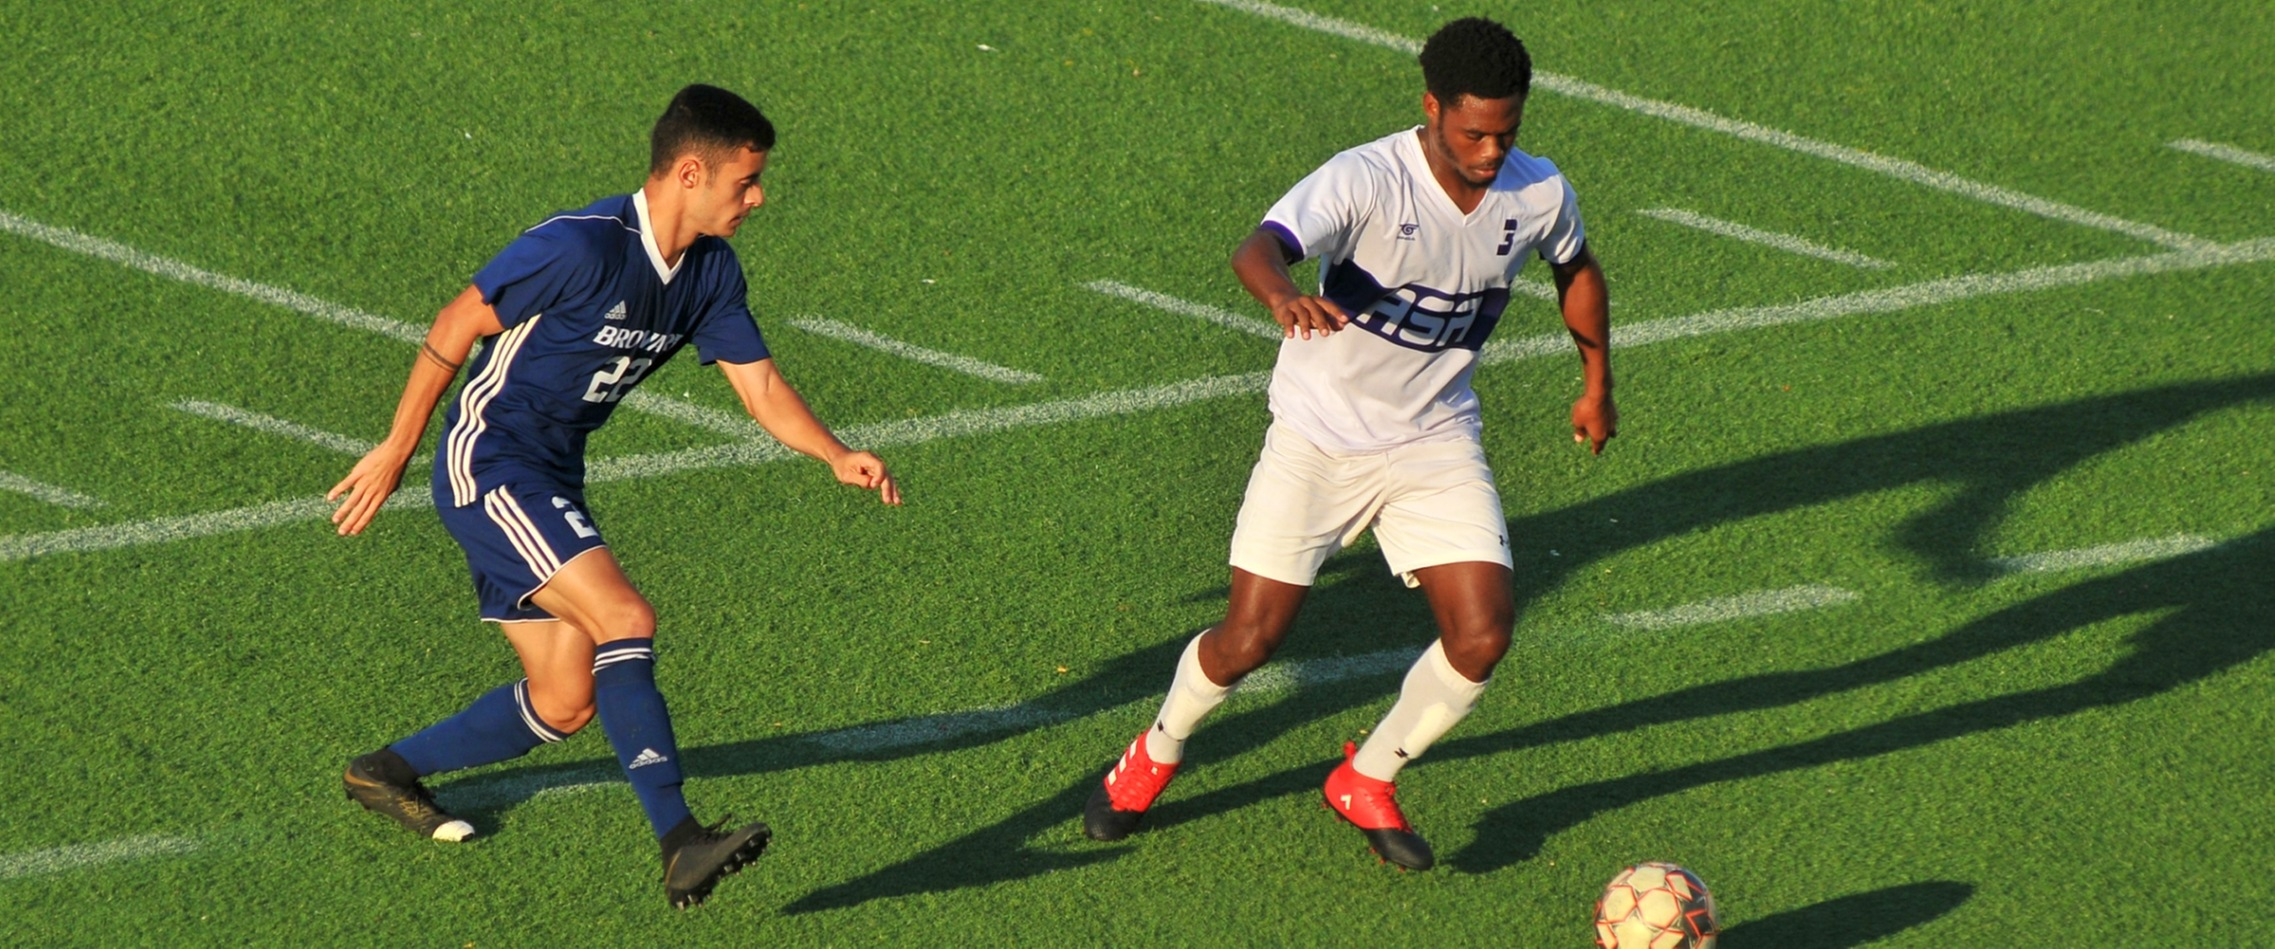 ASA Soccer Knocked Out In Region VIII Play-In Game